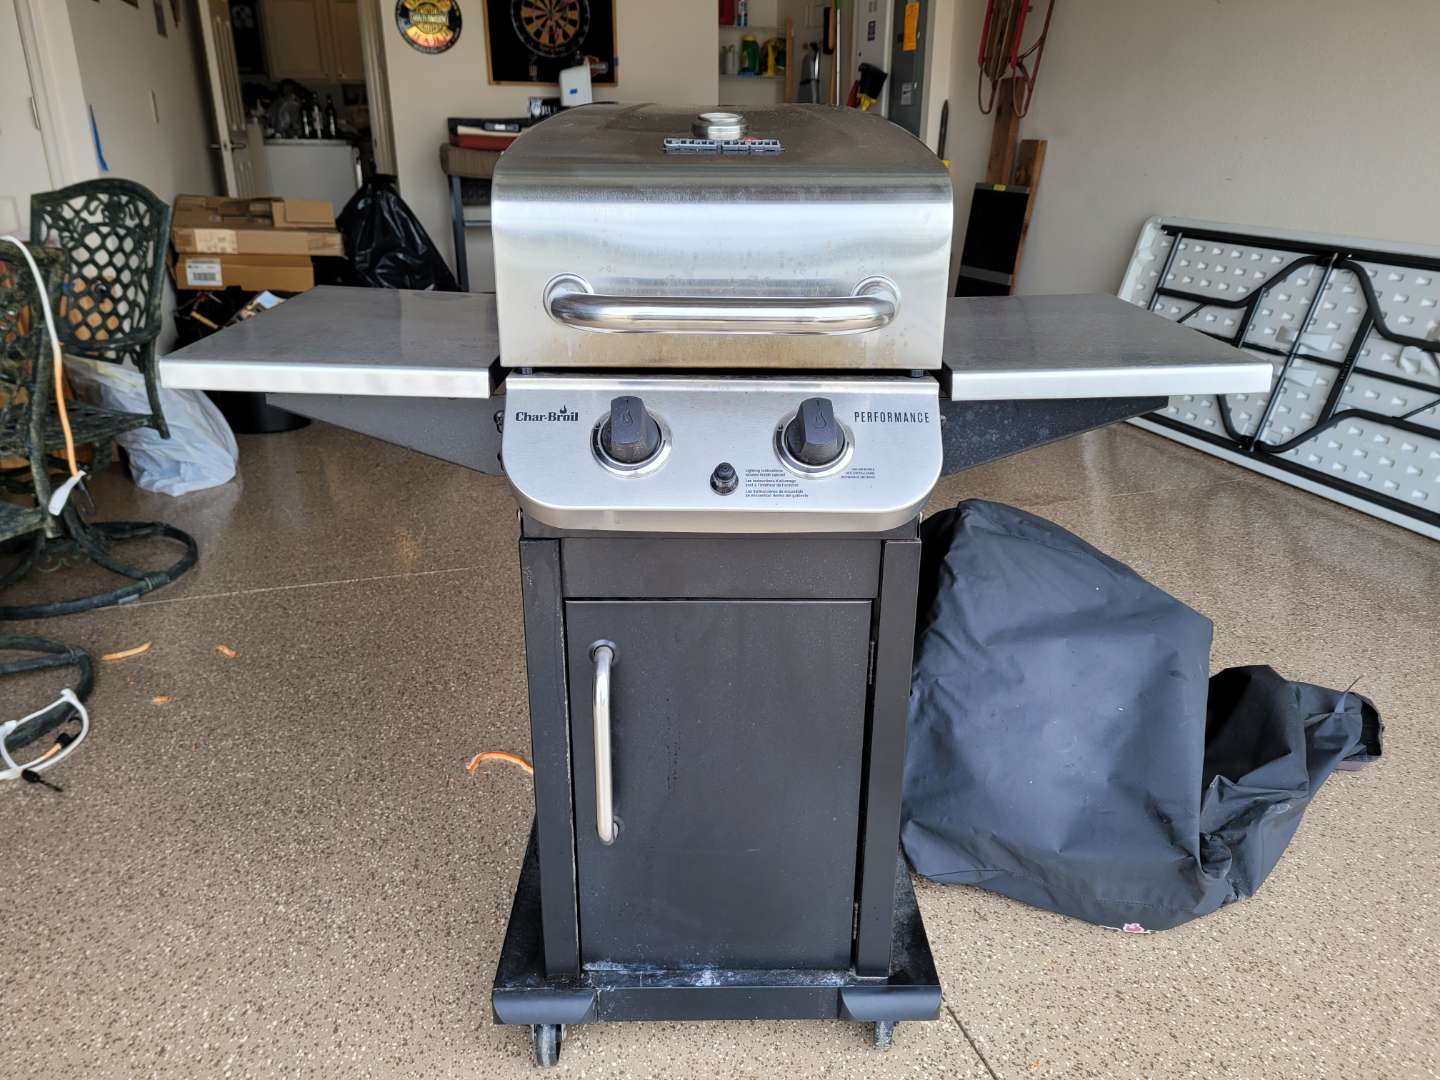 Lot # 454 Charbroil Propane Grill w/ Cover